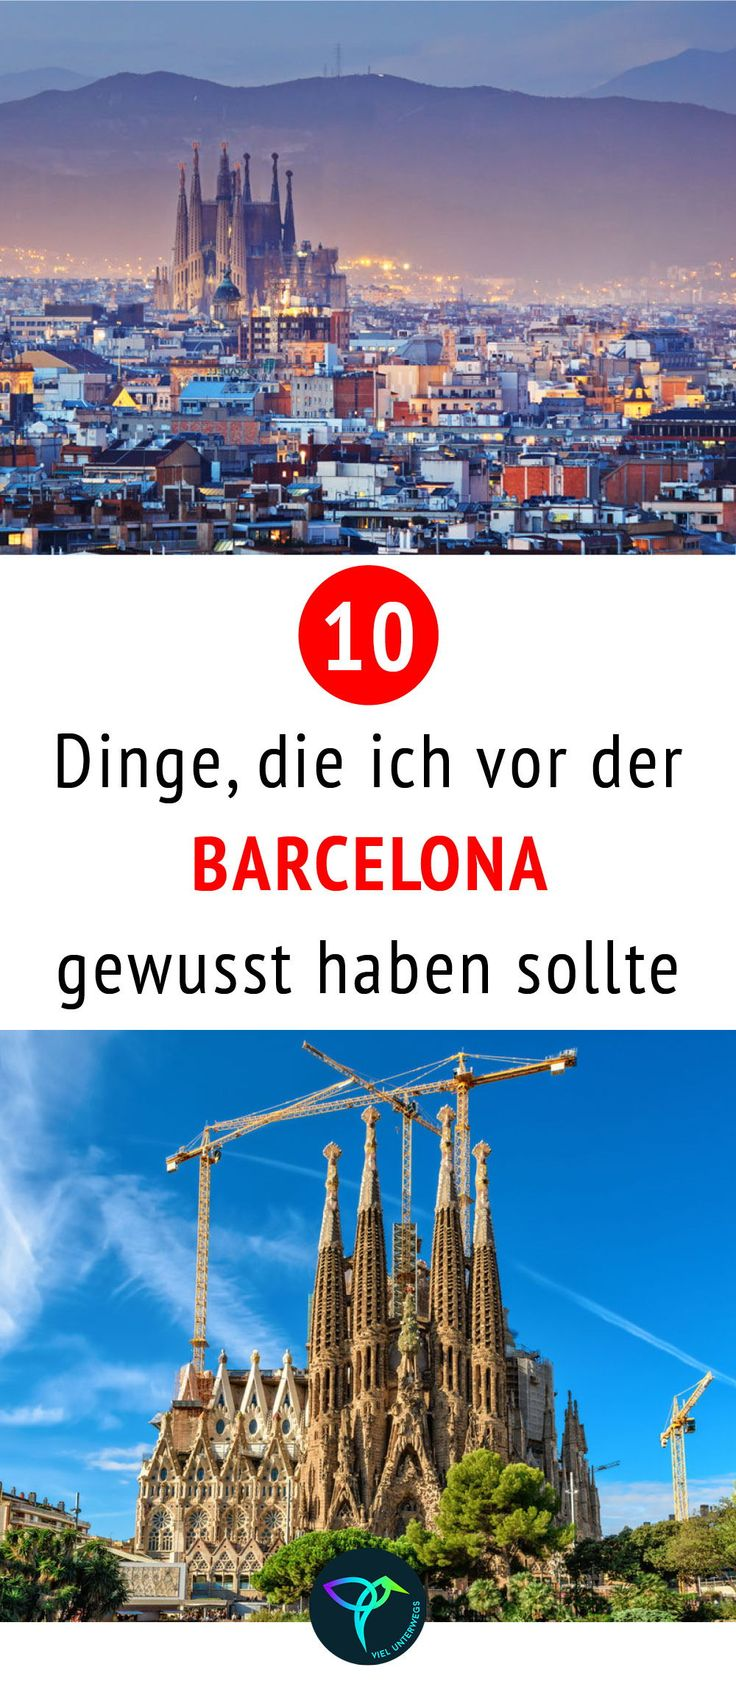 3 days Barcelona: insider tips with sights